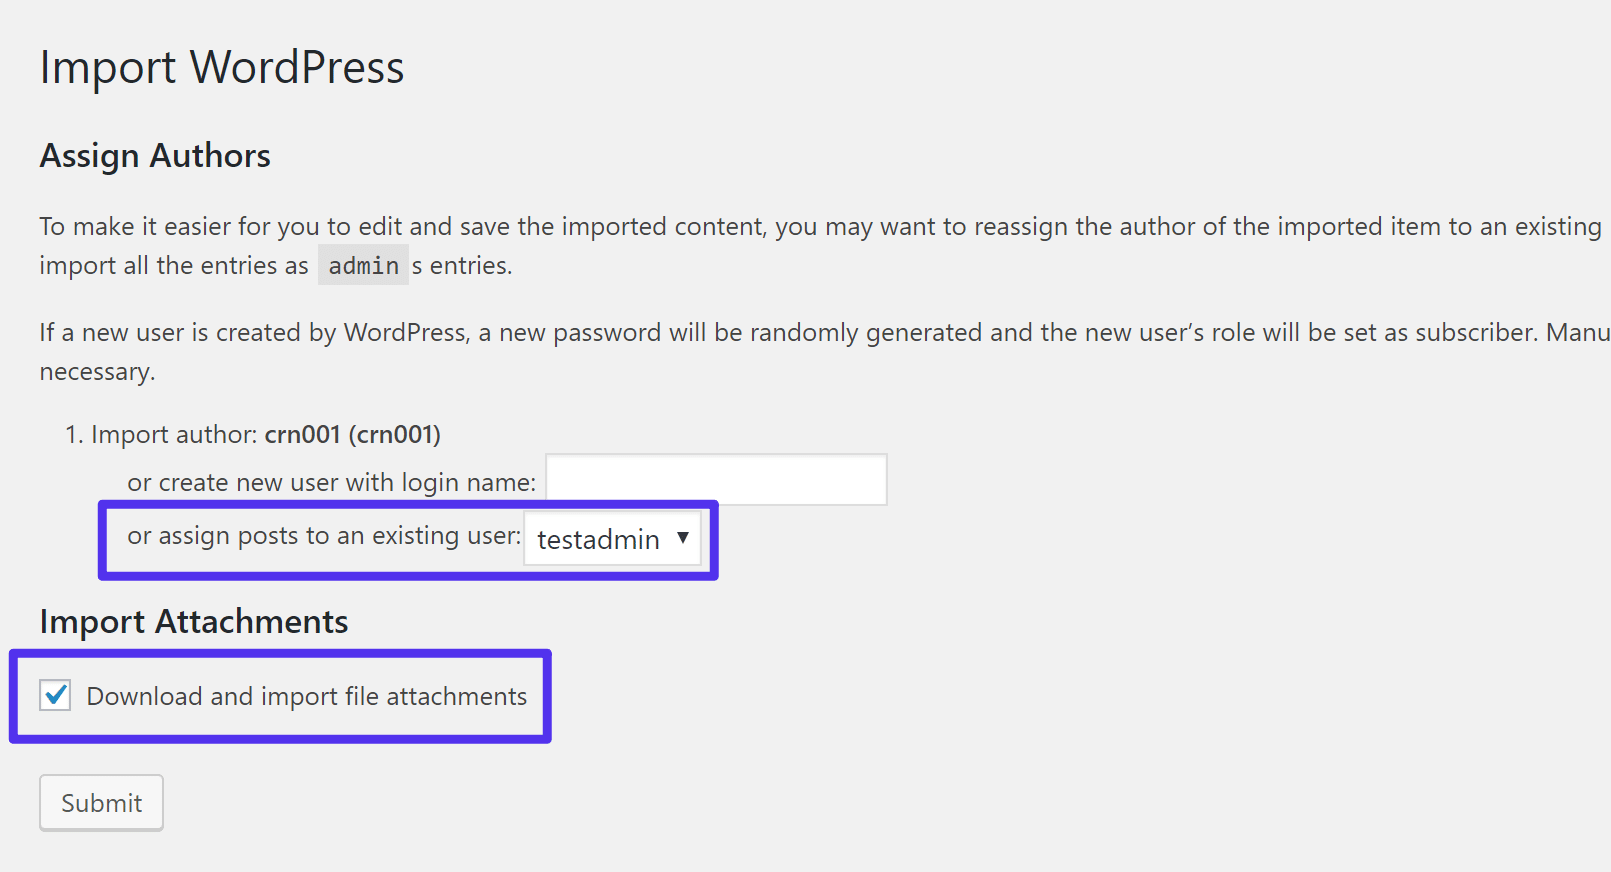 Configure the import settings